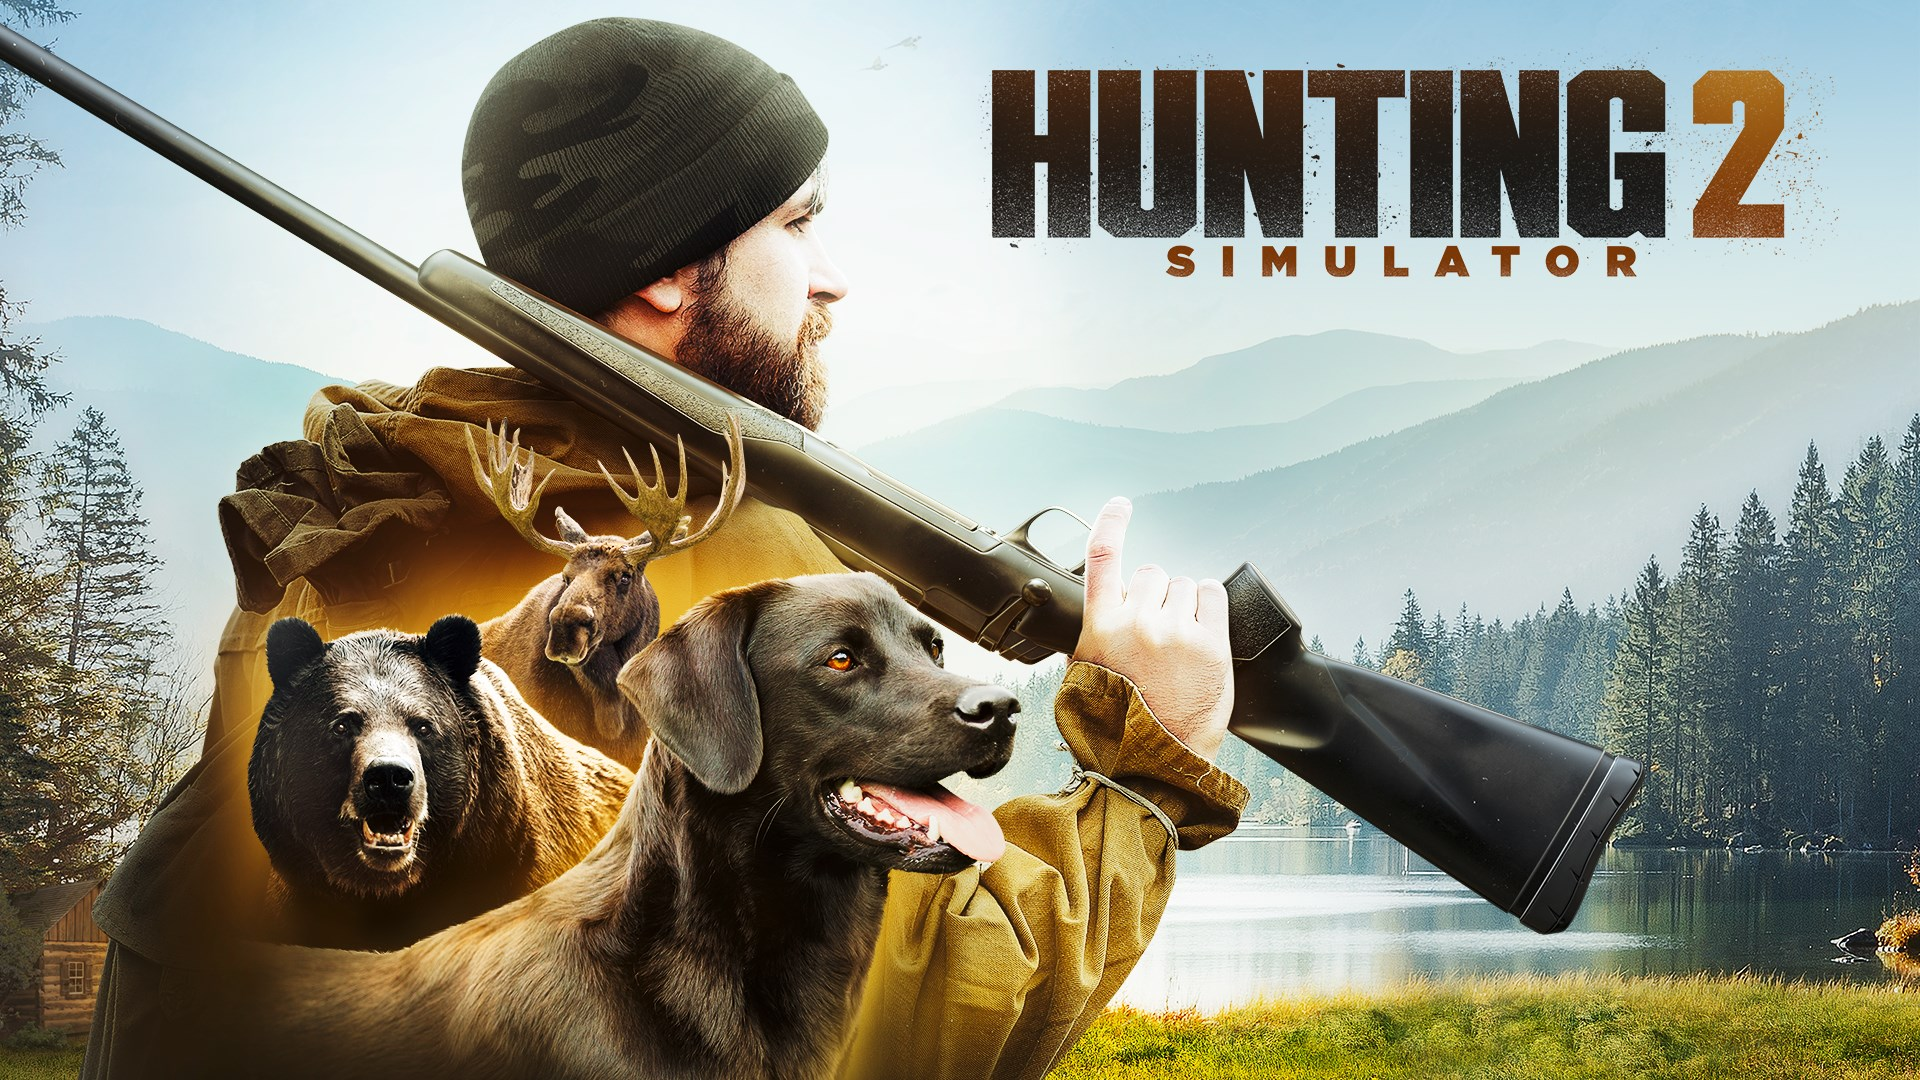 box shot of Hunting Simulator 2